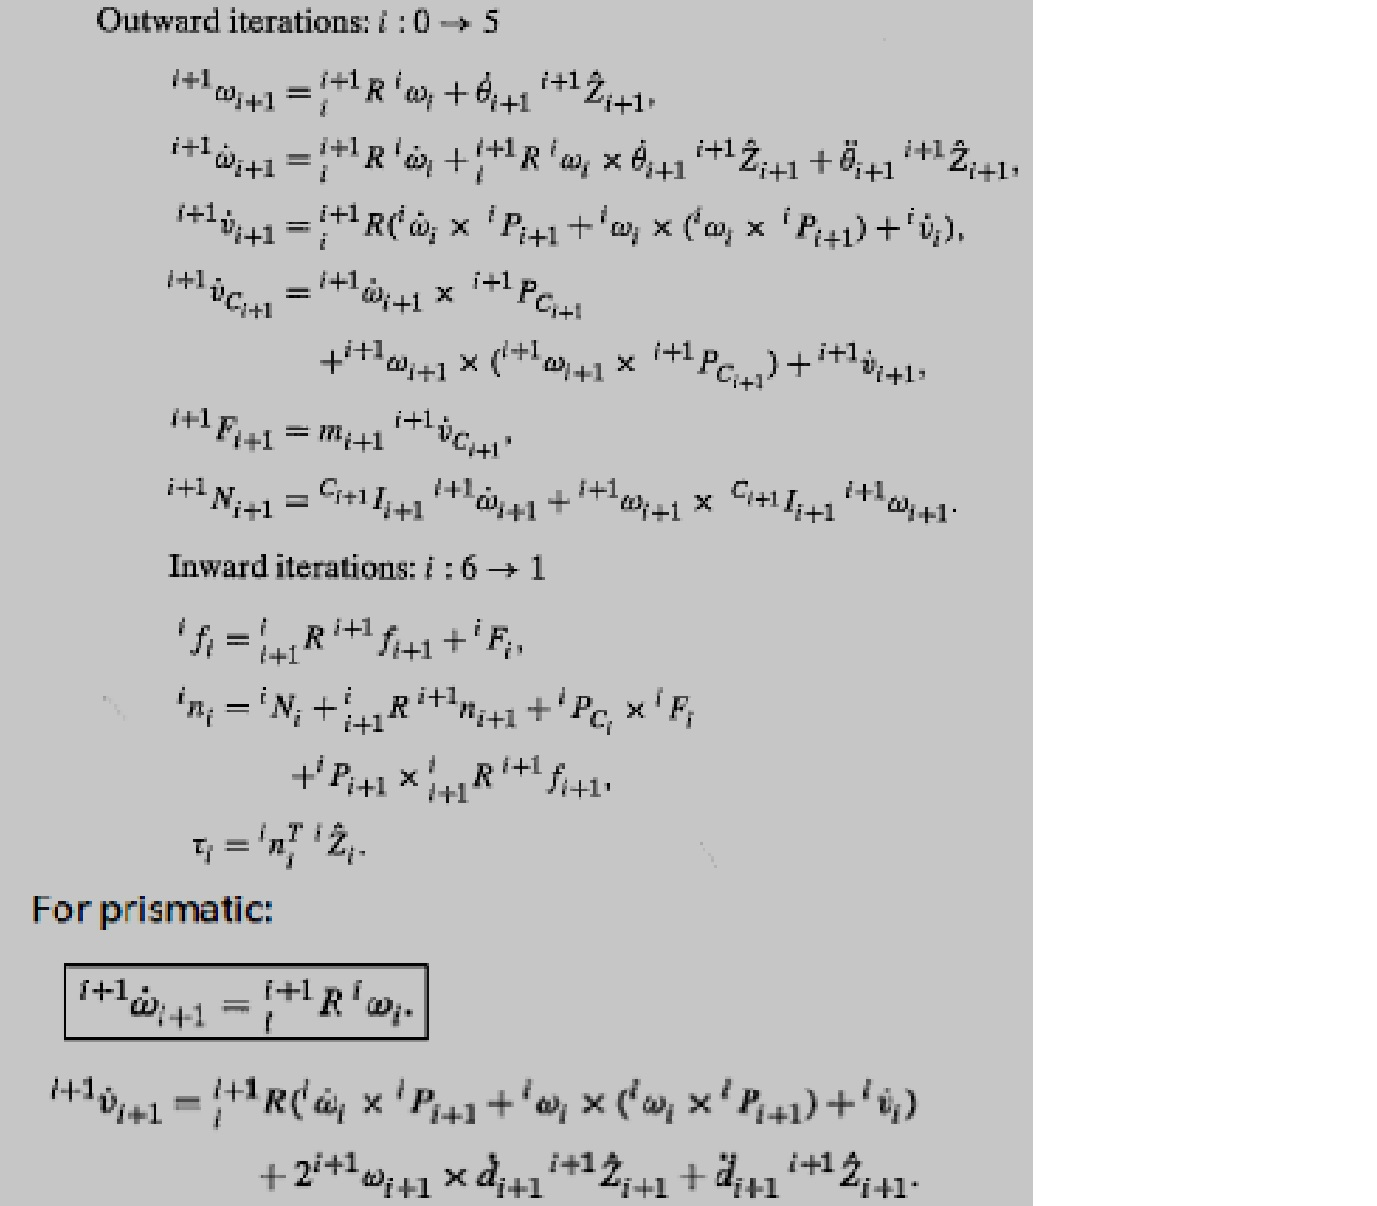 Compute The Closed-form Dynamic Equation (NOT Usin... | Chegg.com